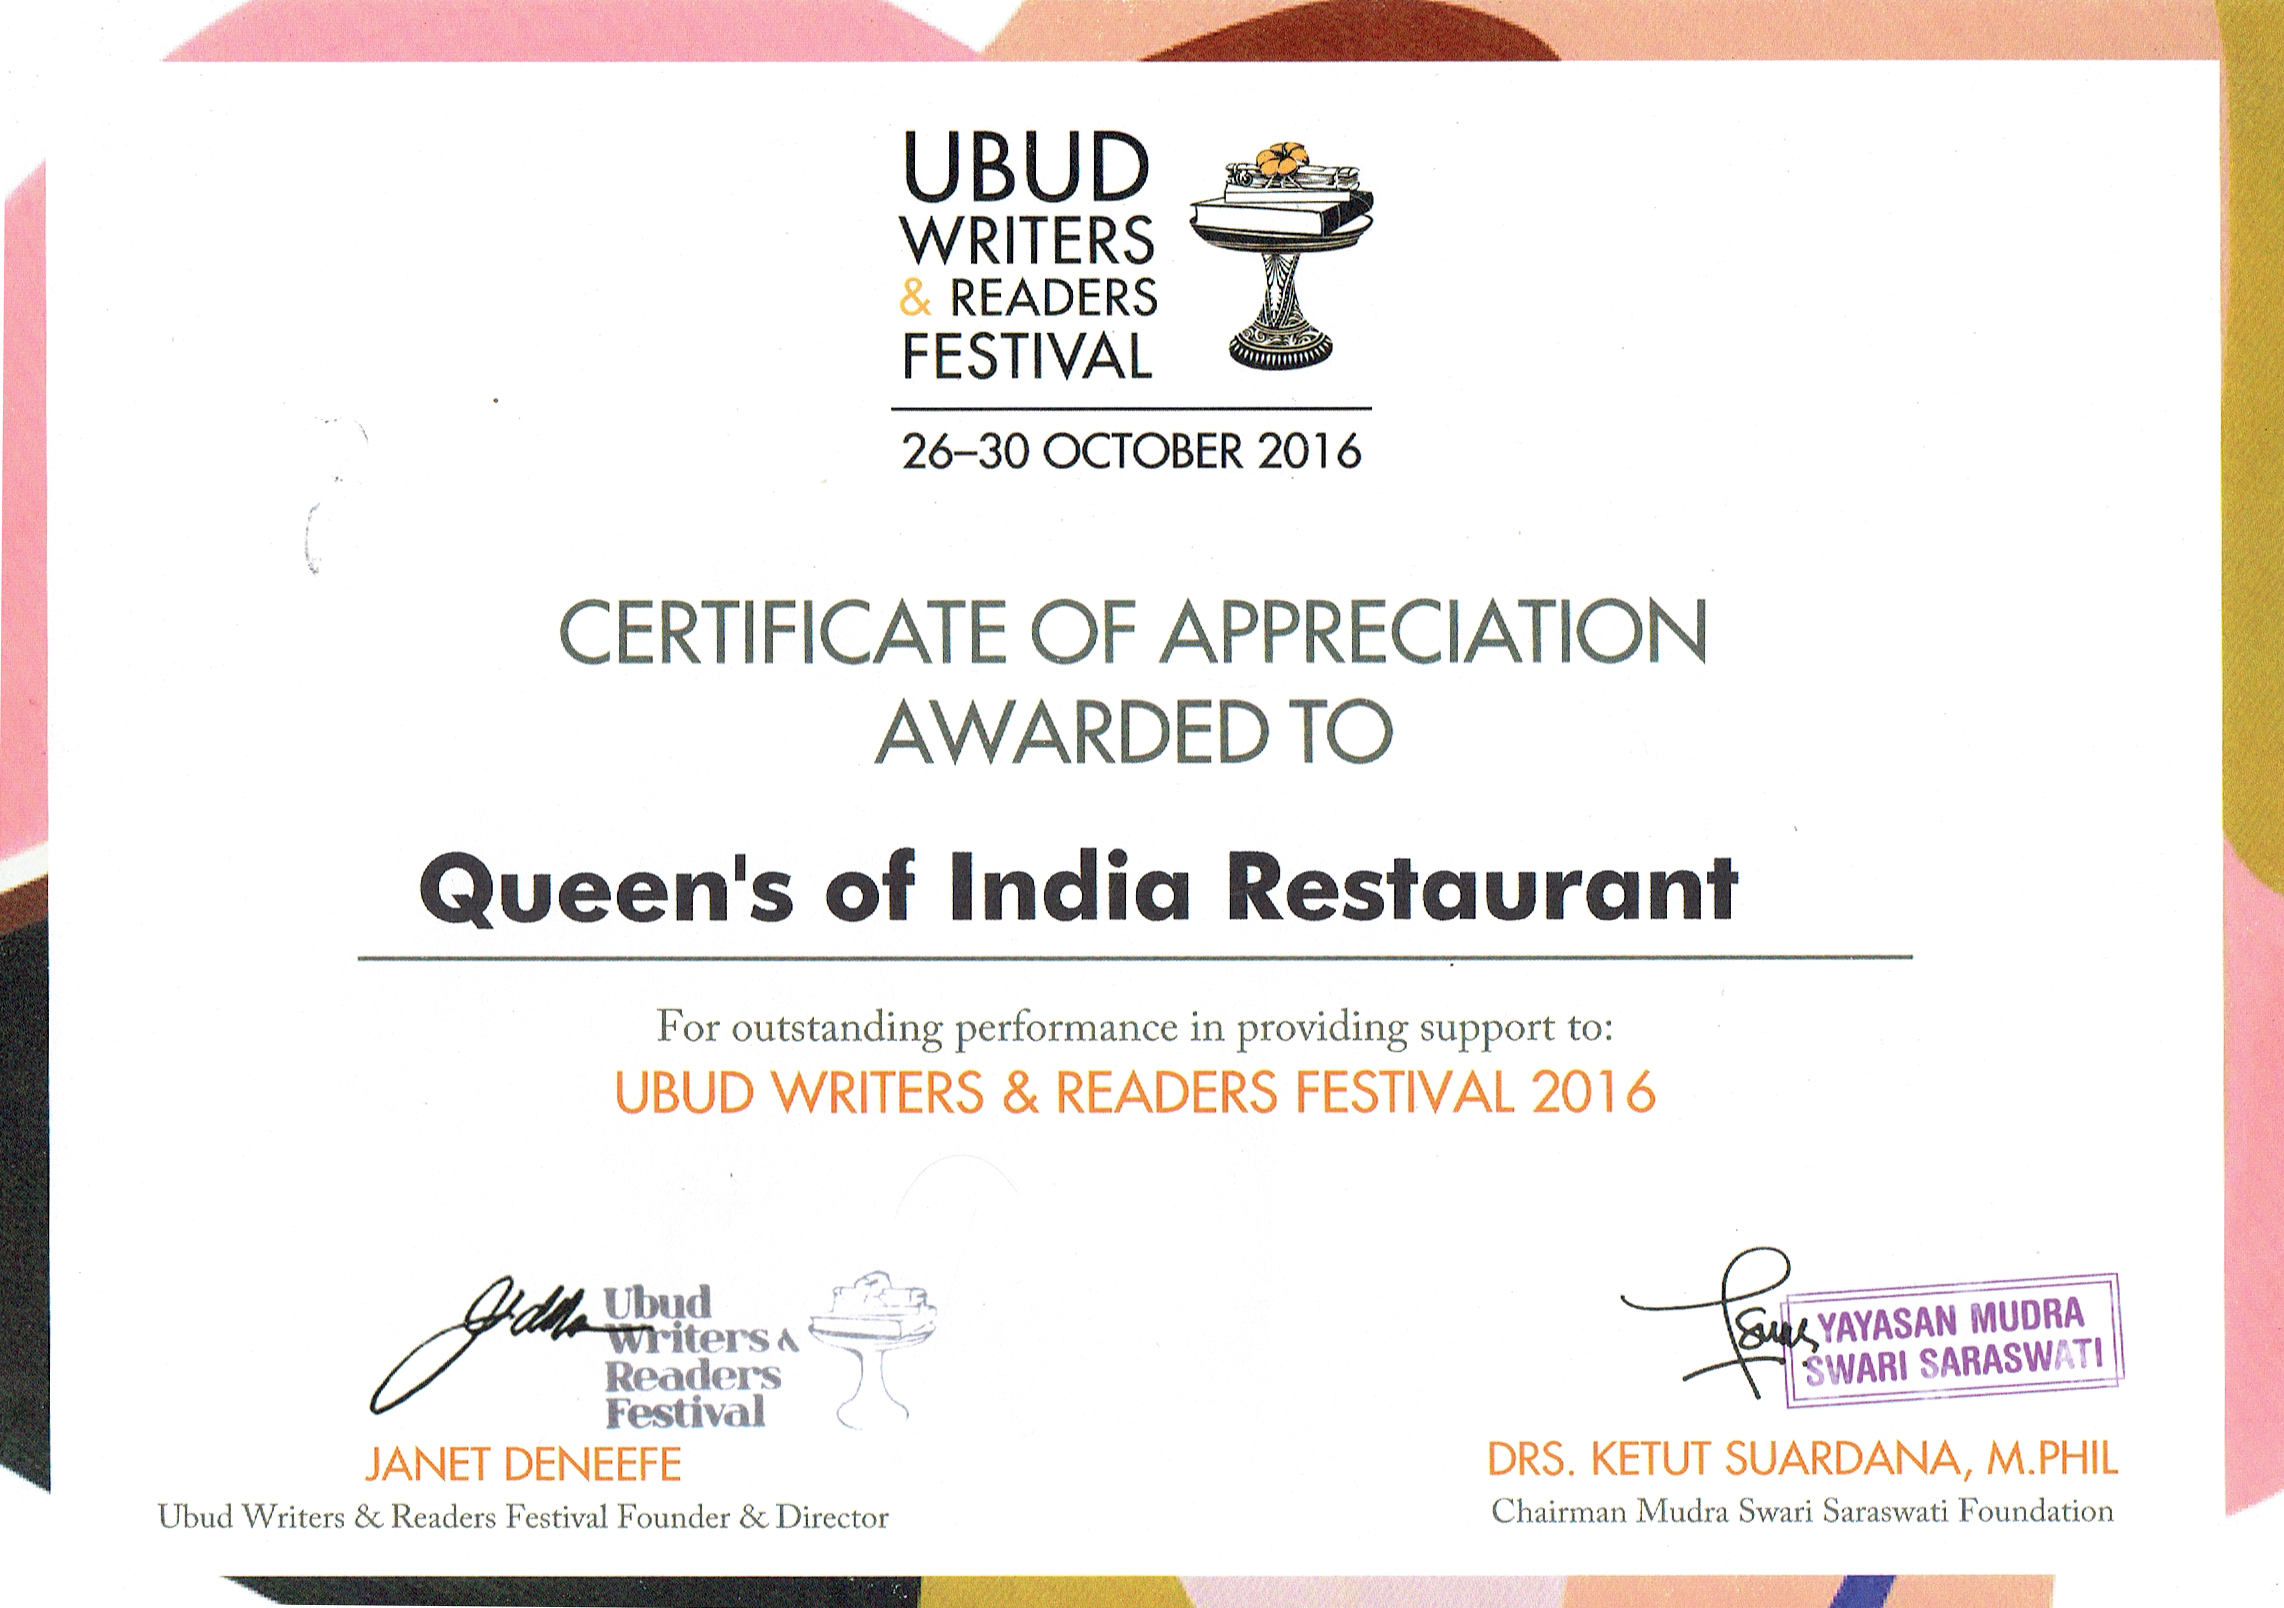 Certificate of Appriciation Awarded to Queens of India